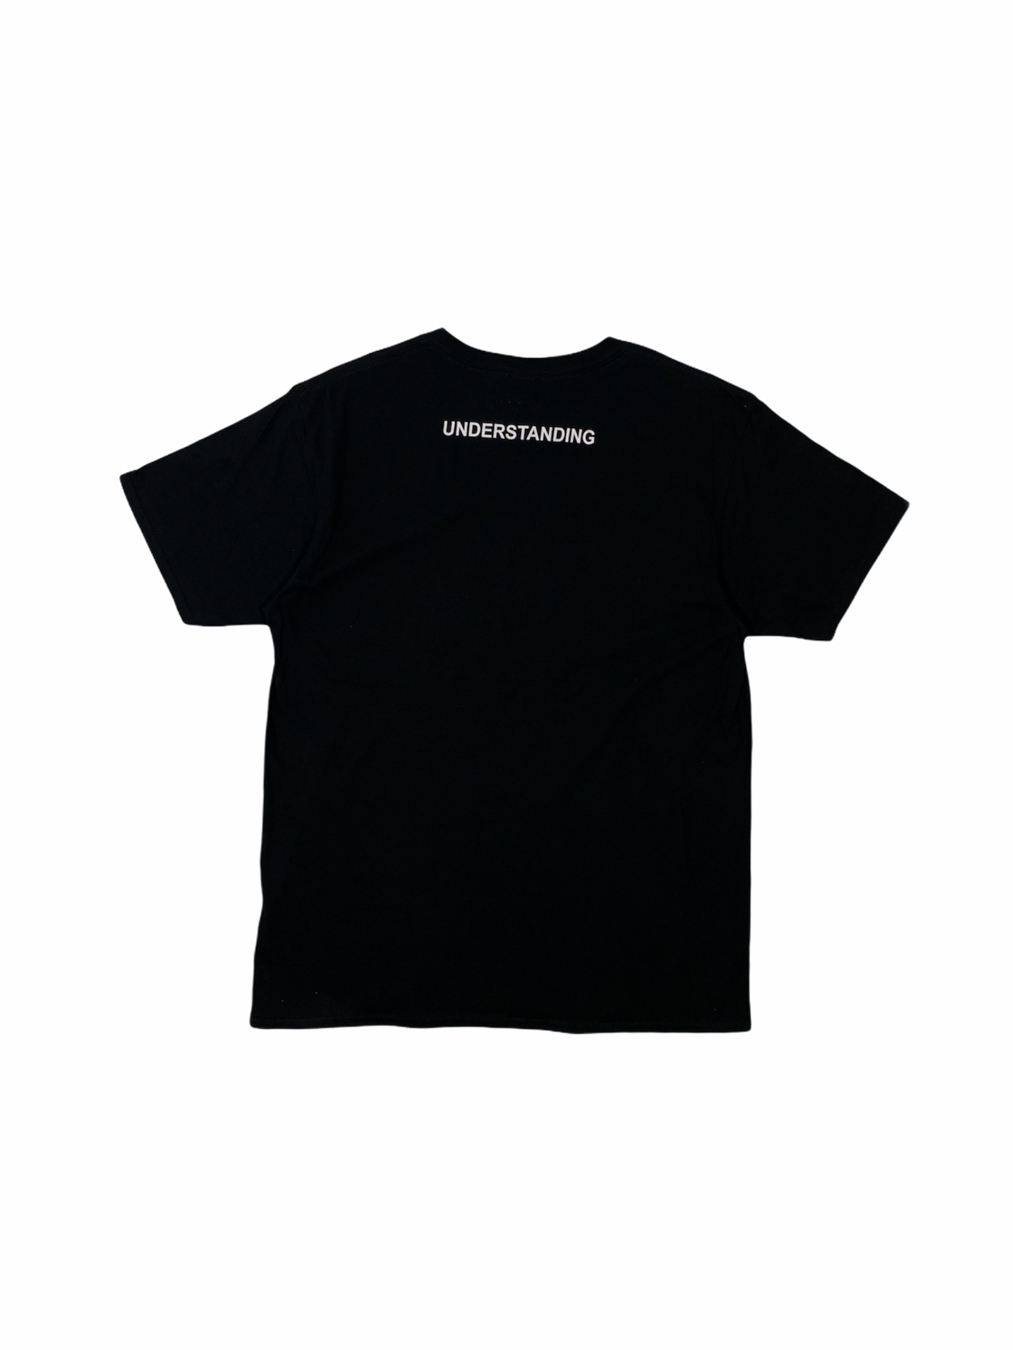 What Do You Expect T-Shirt  (UNDERSTANDING)